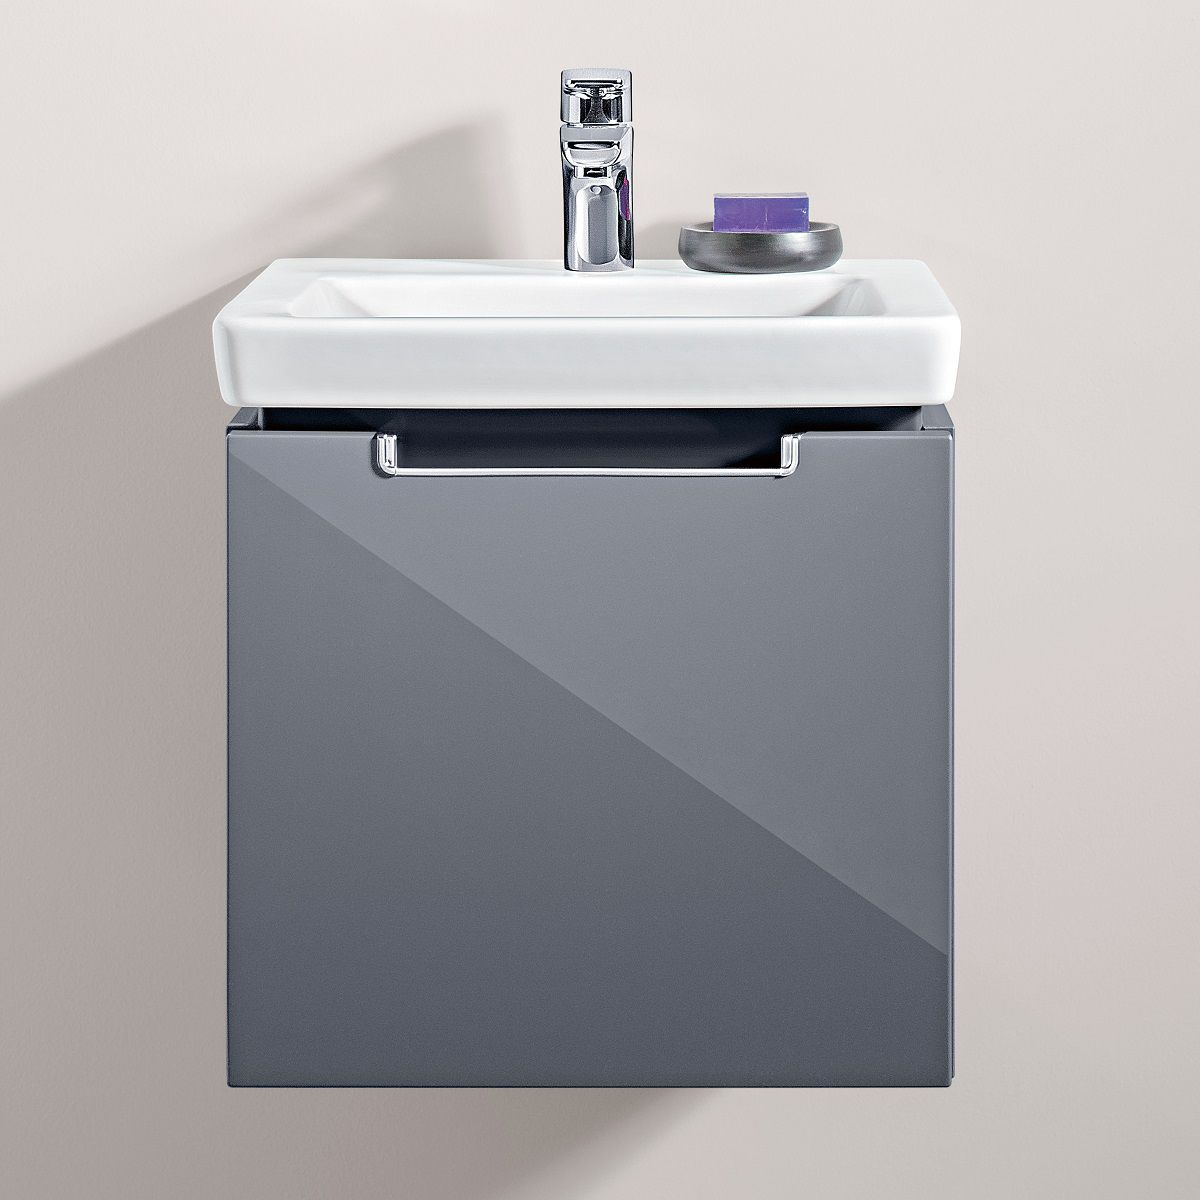 Villeroy & Boch Subway 2.0 Cloakroom 1 Drawer Vanity Unit